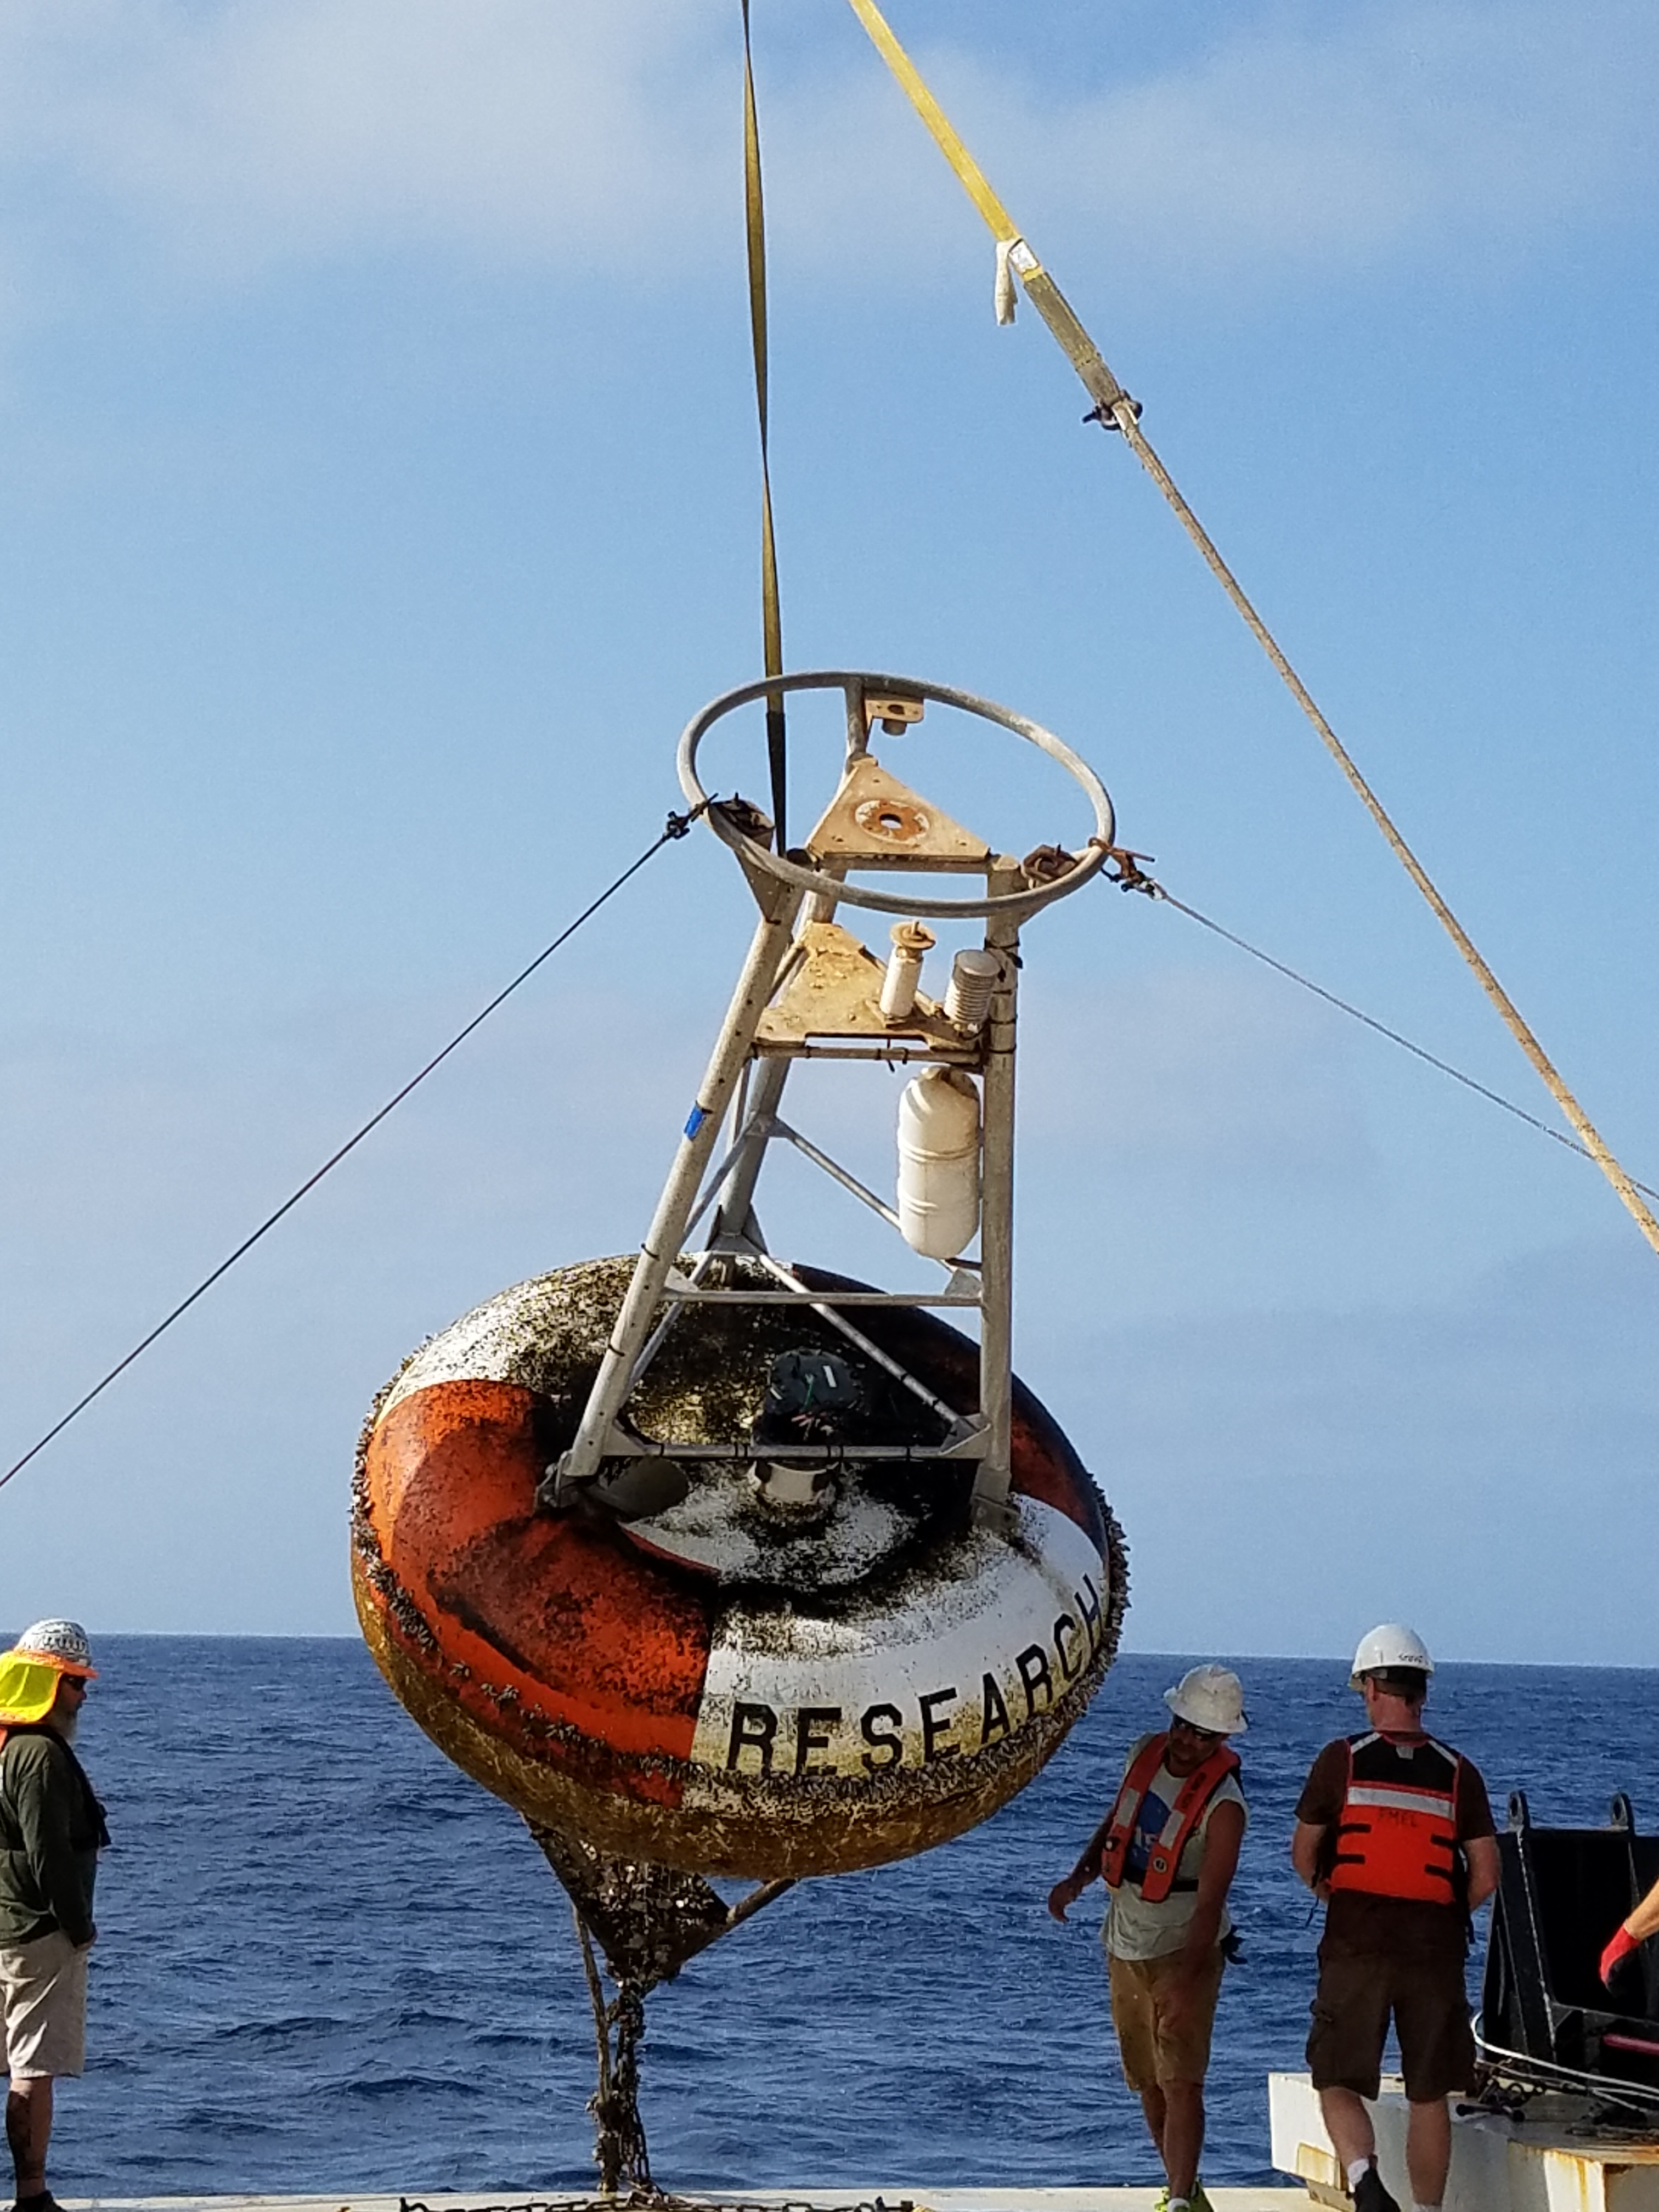 A PNE mooring being recovered after 15 months at sea. Image credit: NOAA